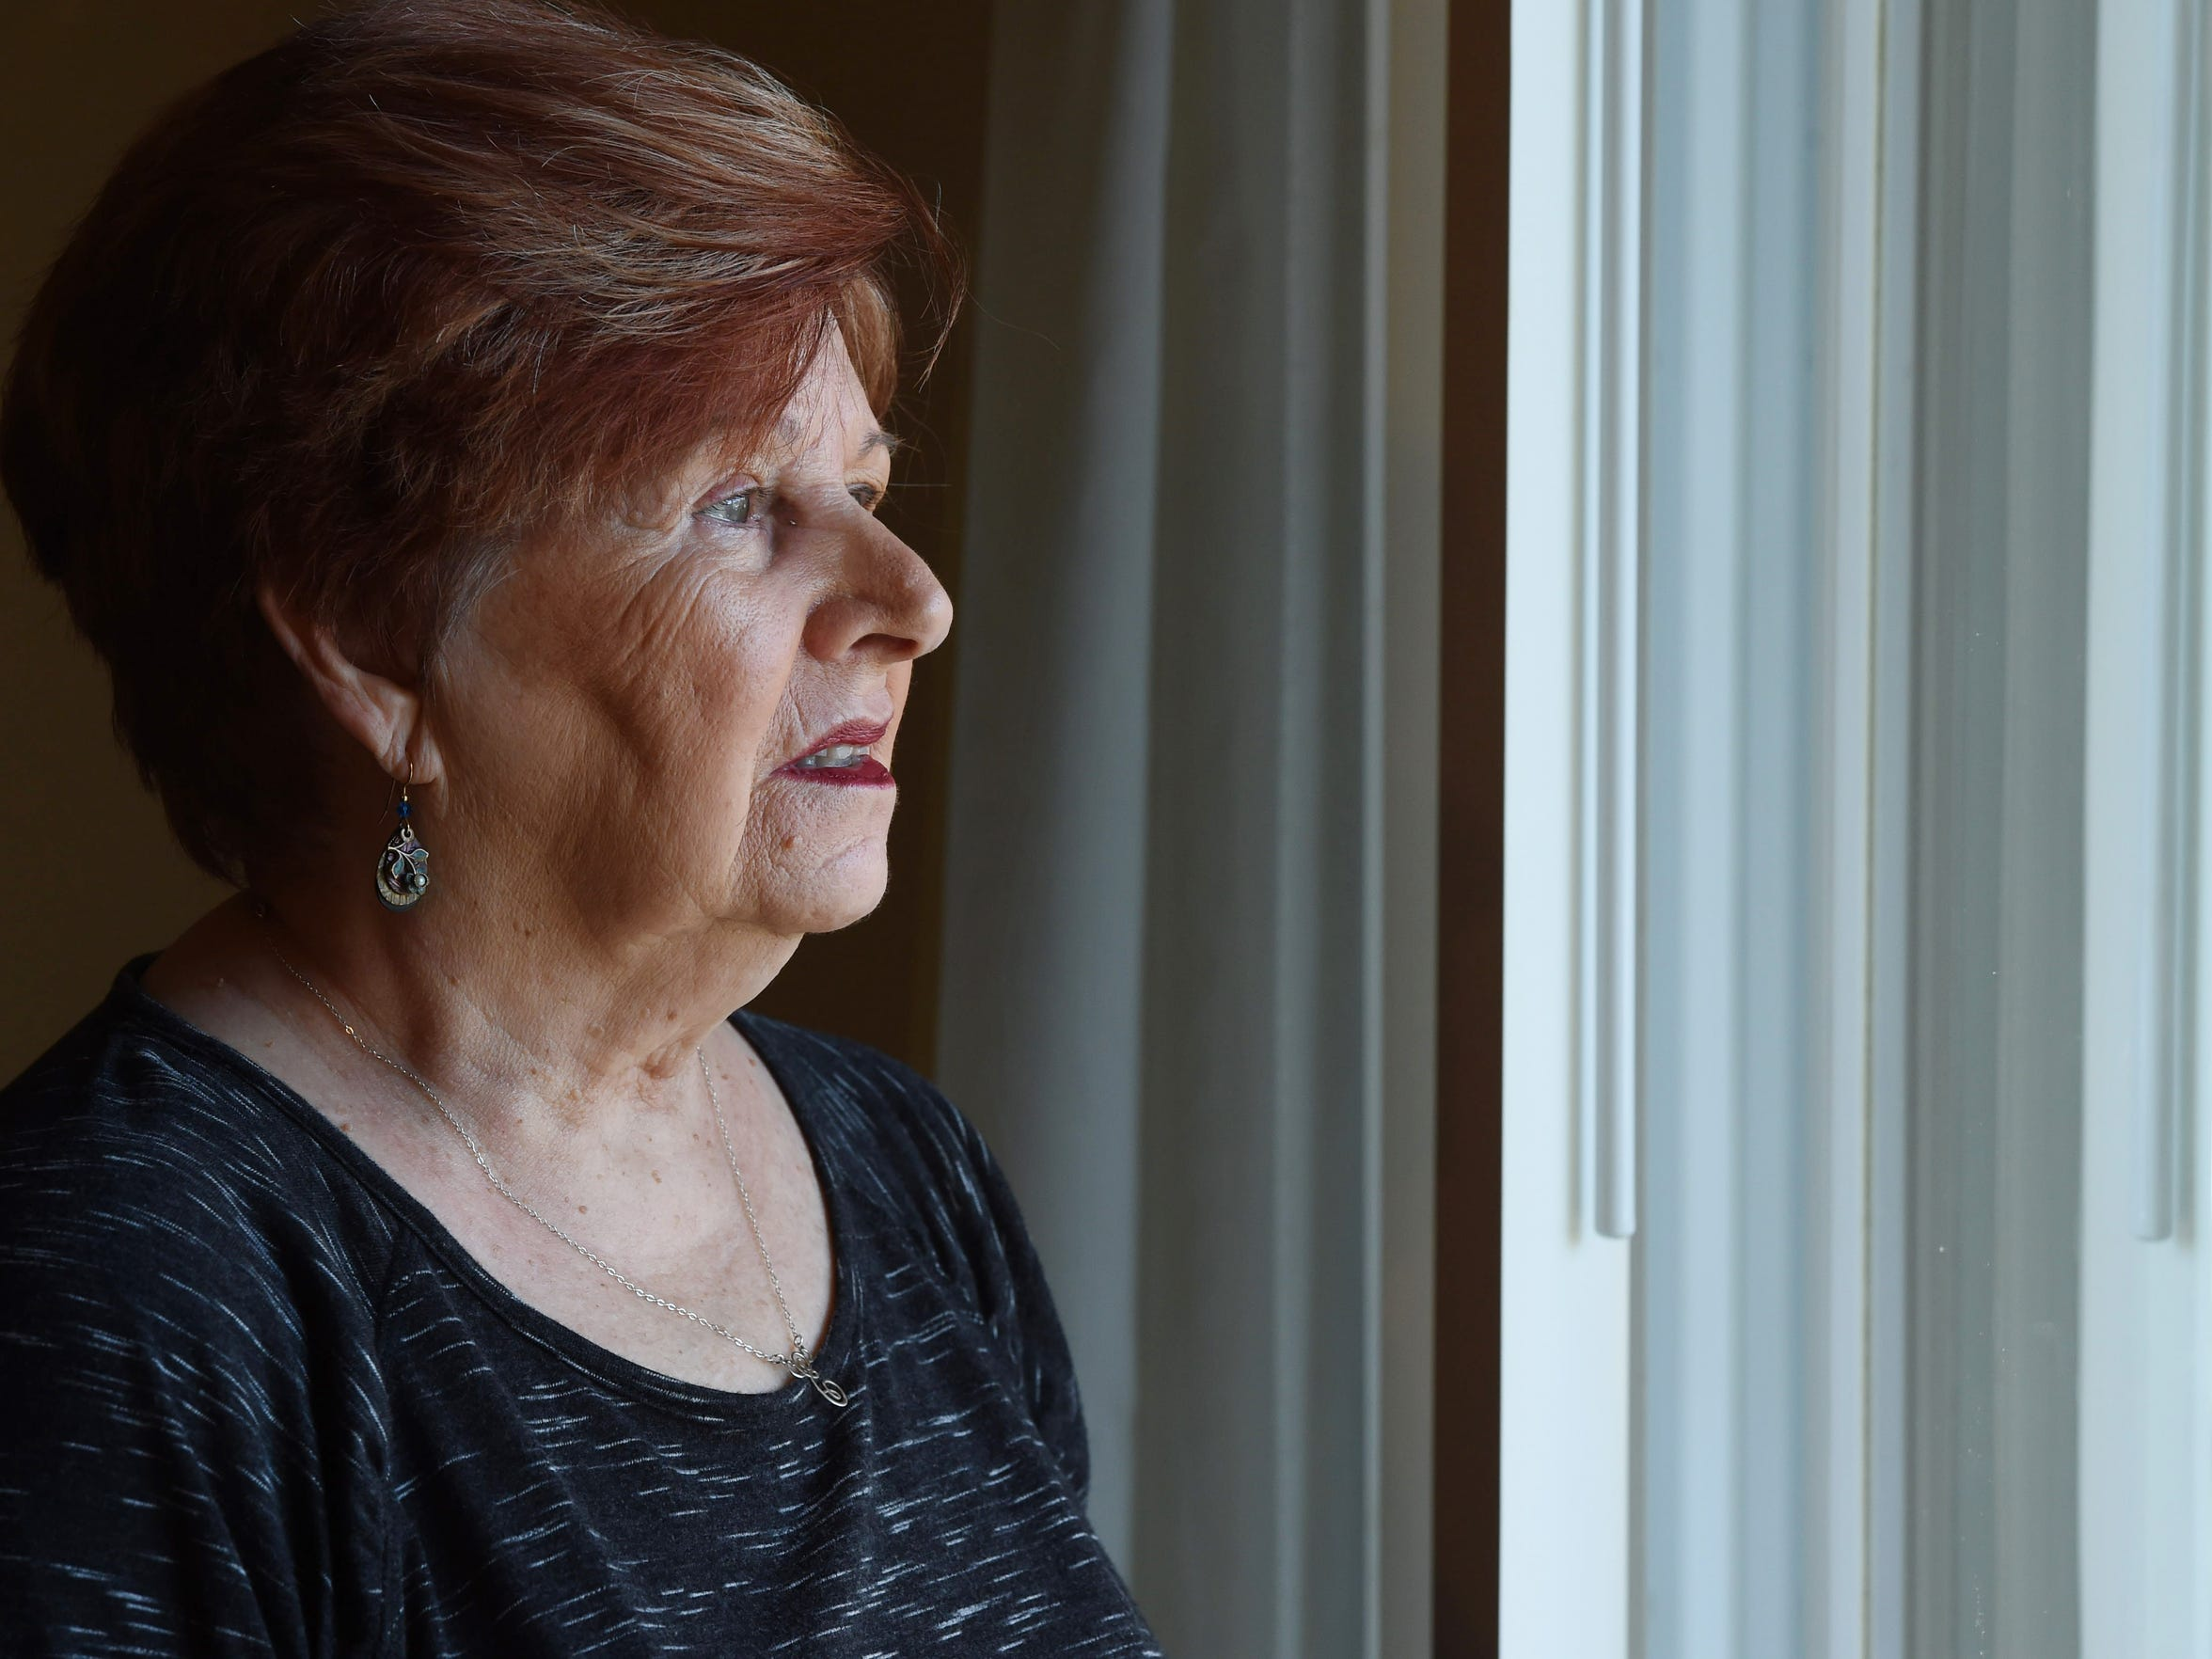 Elsa Verdichizzi, is seen in this photo inside an apartment at Rombout Village cooperative complex in the Town of Fishkill on March 29, 2017. Earlier this year, Verdichizzi's son, John Verdichizzi, was required to move out of his mother's apartment after quarreling with management of the 144-unit complex.